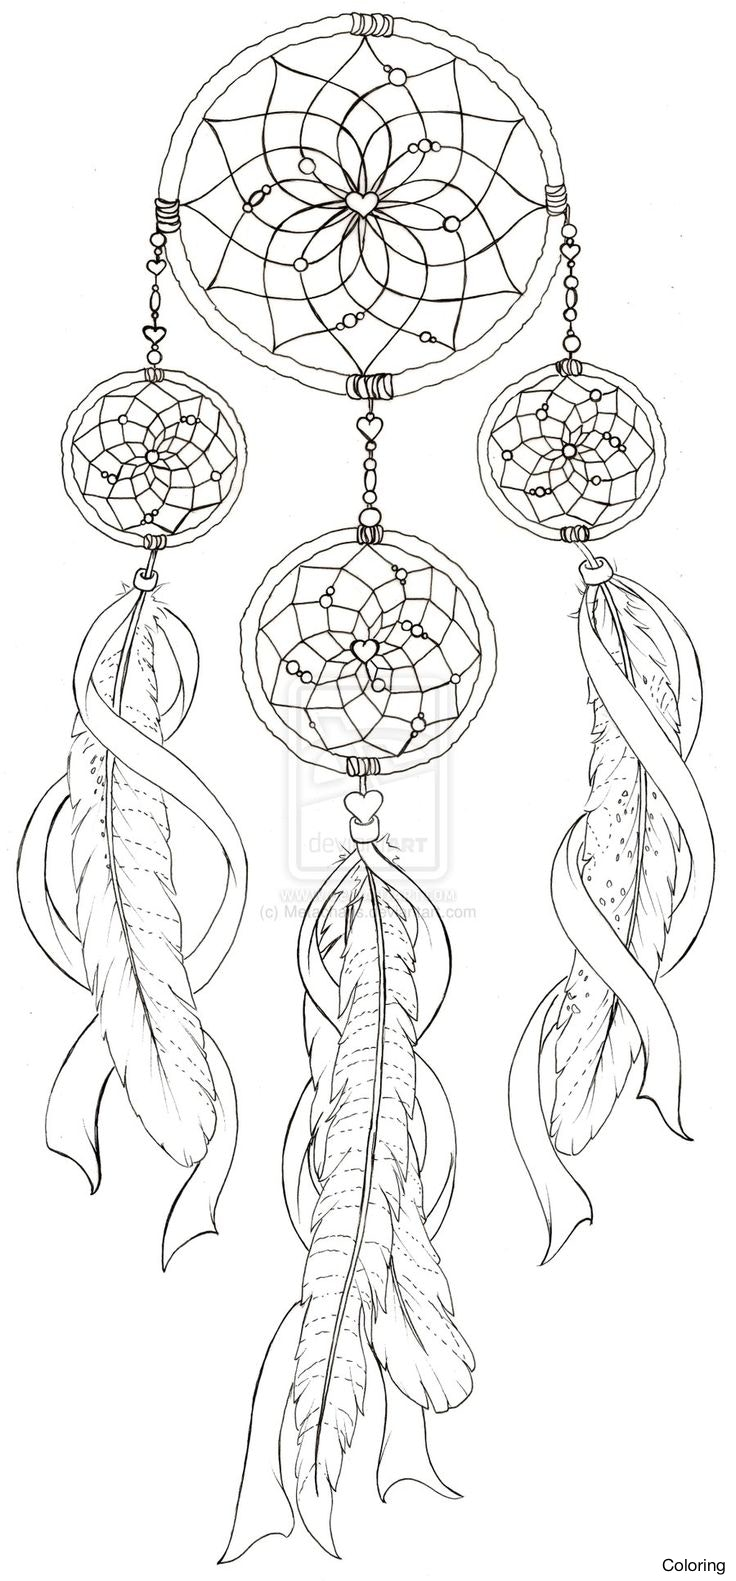 736x1581 Dream Catcher Coloring Pages 002 Dreamcatcher 22f Moon To Print